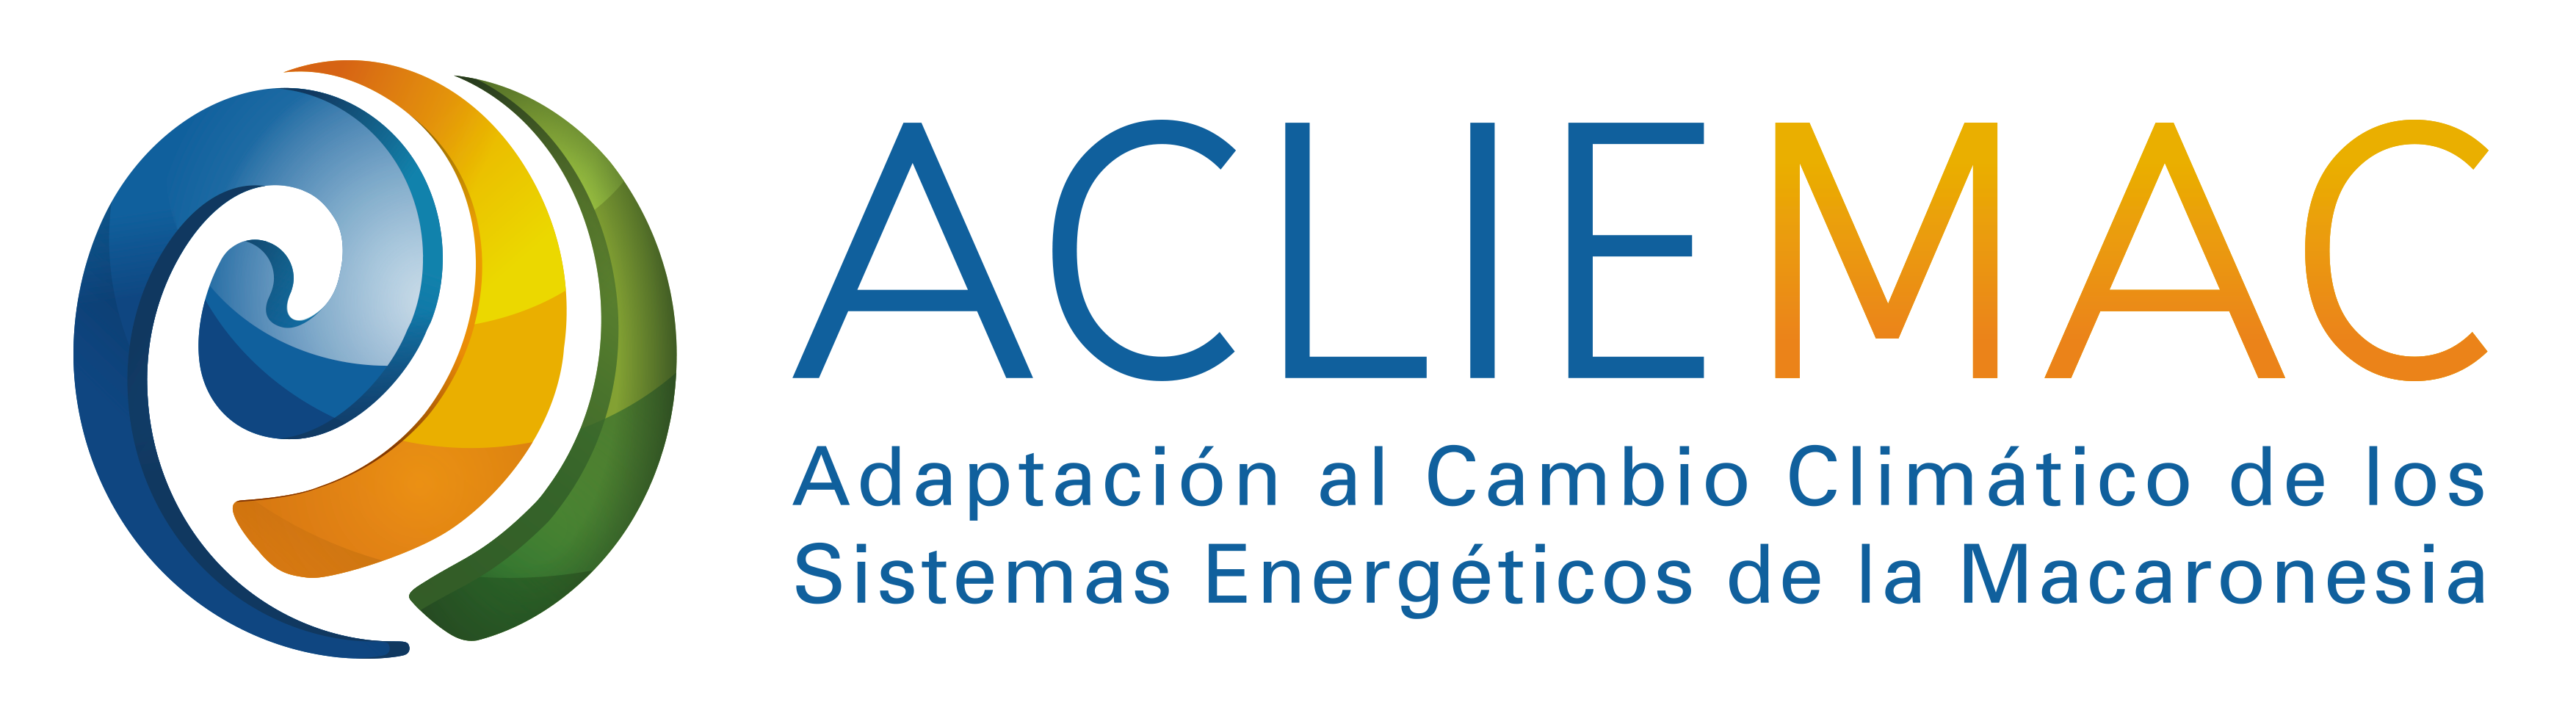 Proyecto ACLIEMAC